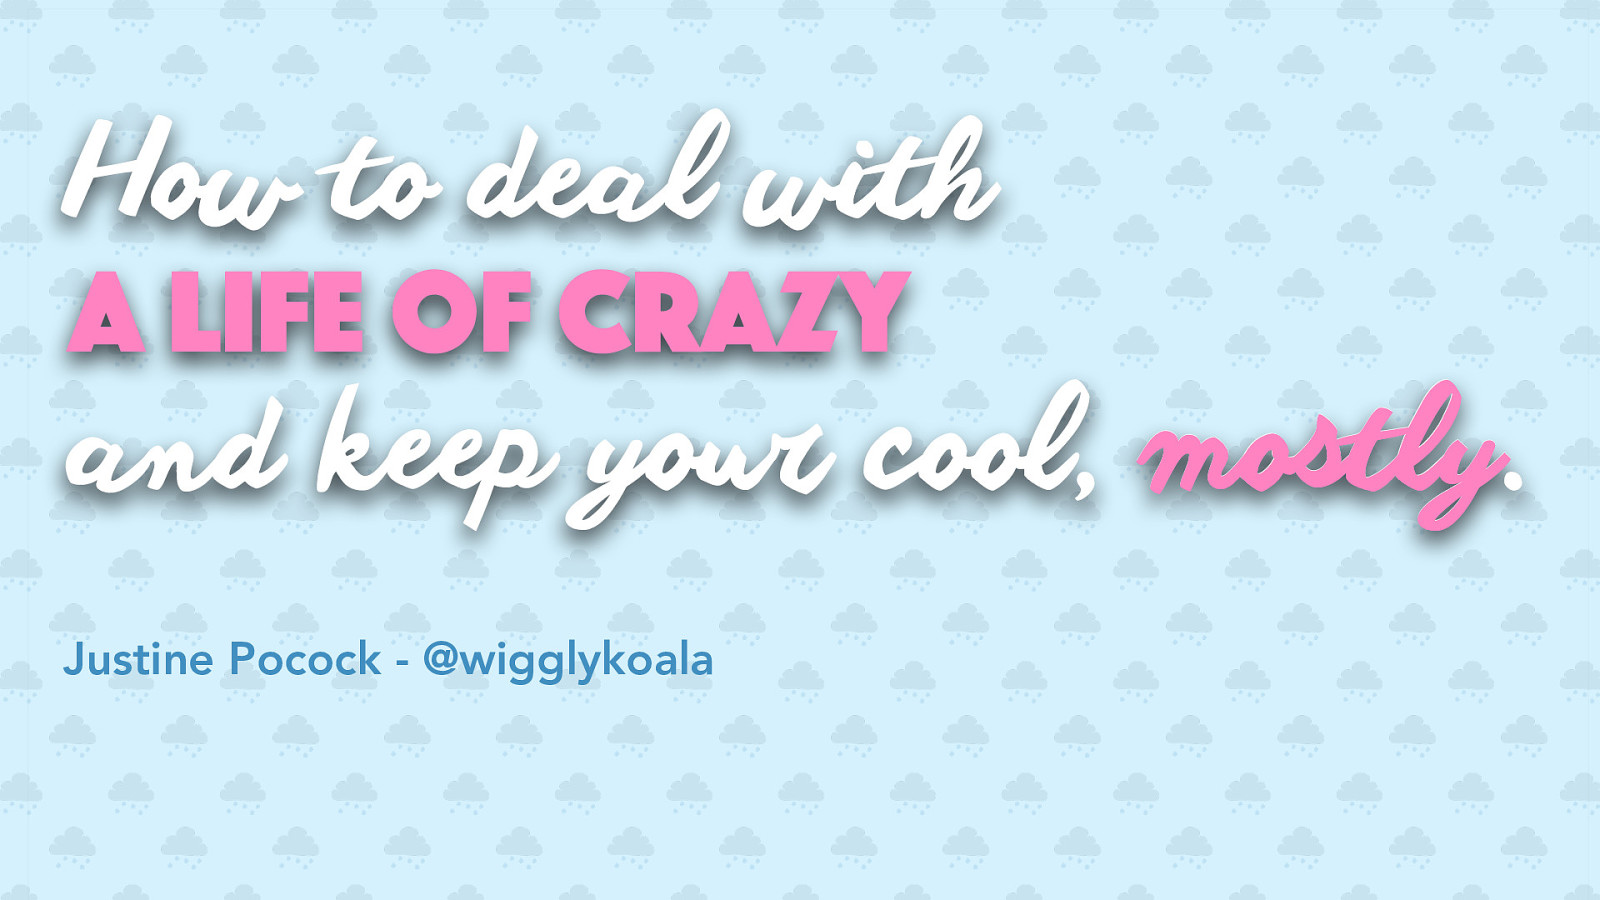 How to deal with a life of crazy and keep your cool, mostly